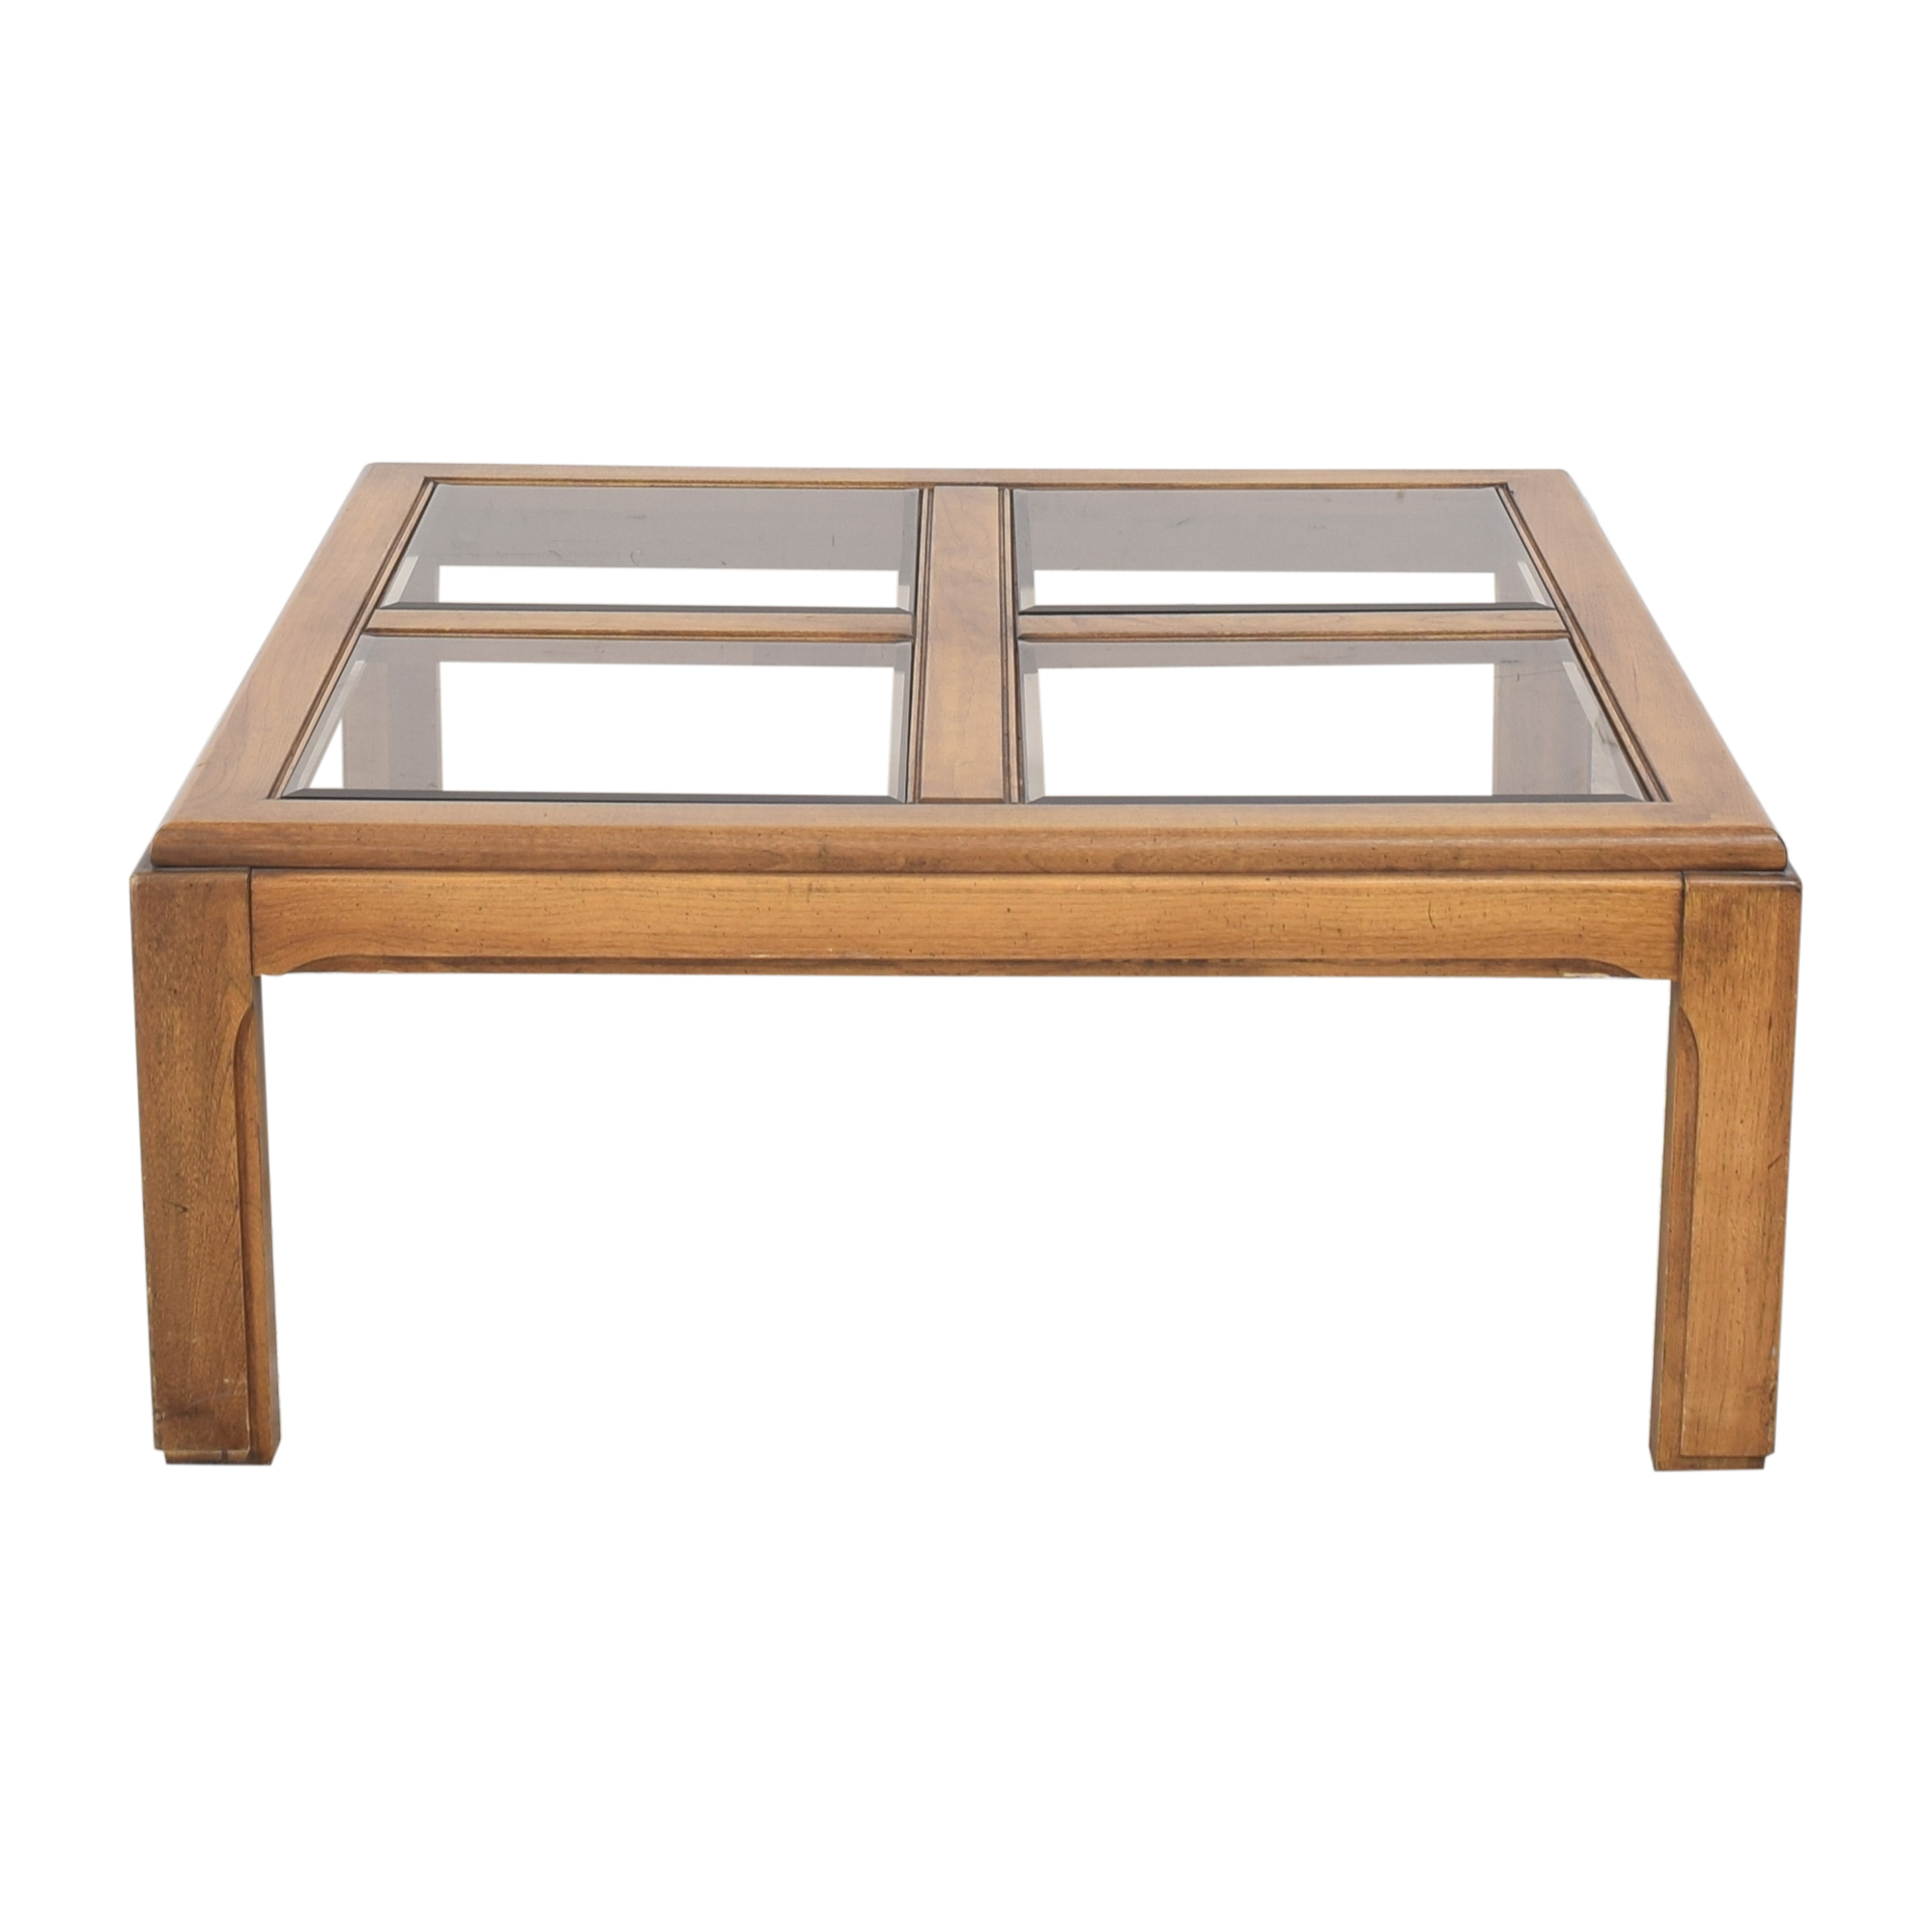 buy Lane Furniture Lane Furniture Glass Grid Coffee Table online